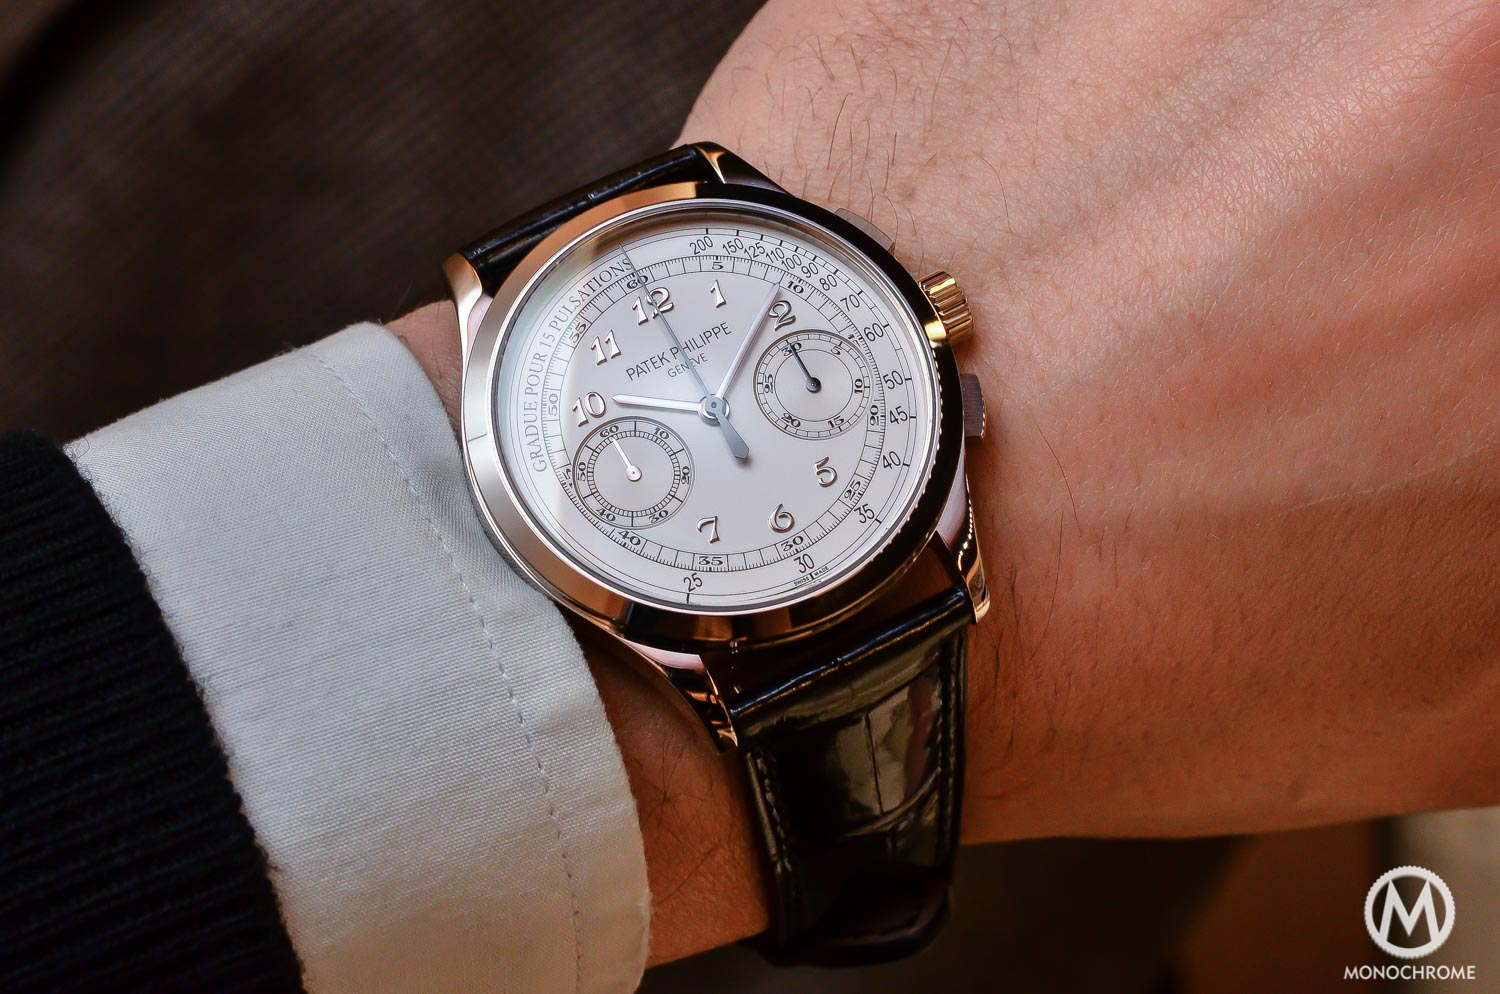 Patek Philippe 5170g-001 Chronograph - review - lifestyle